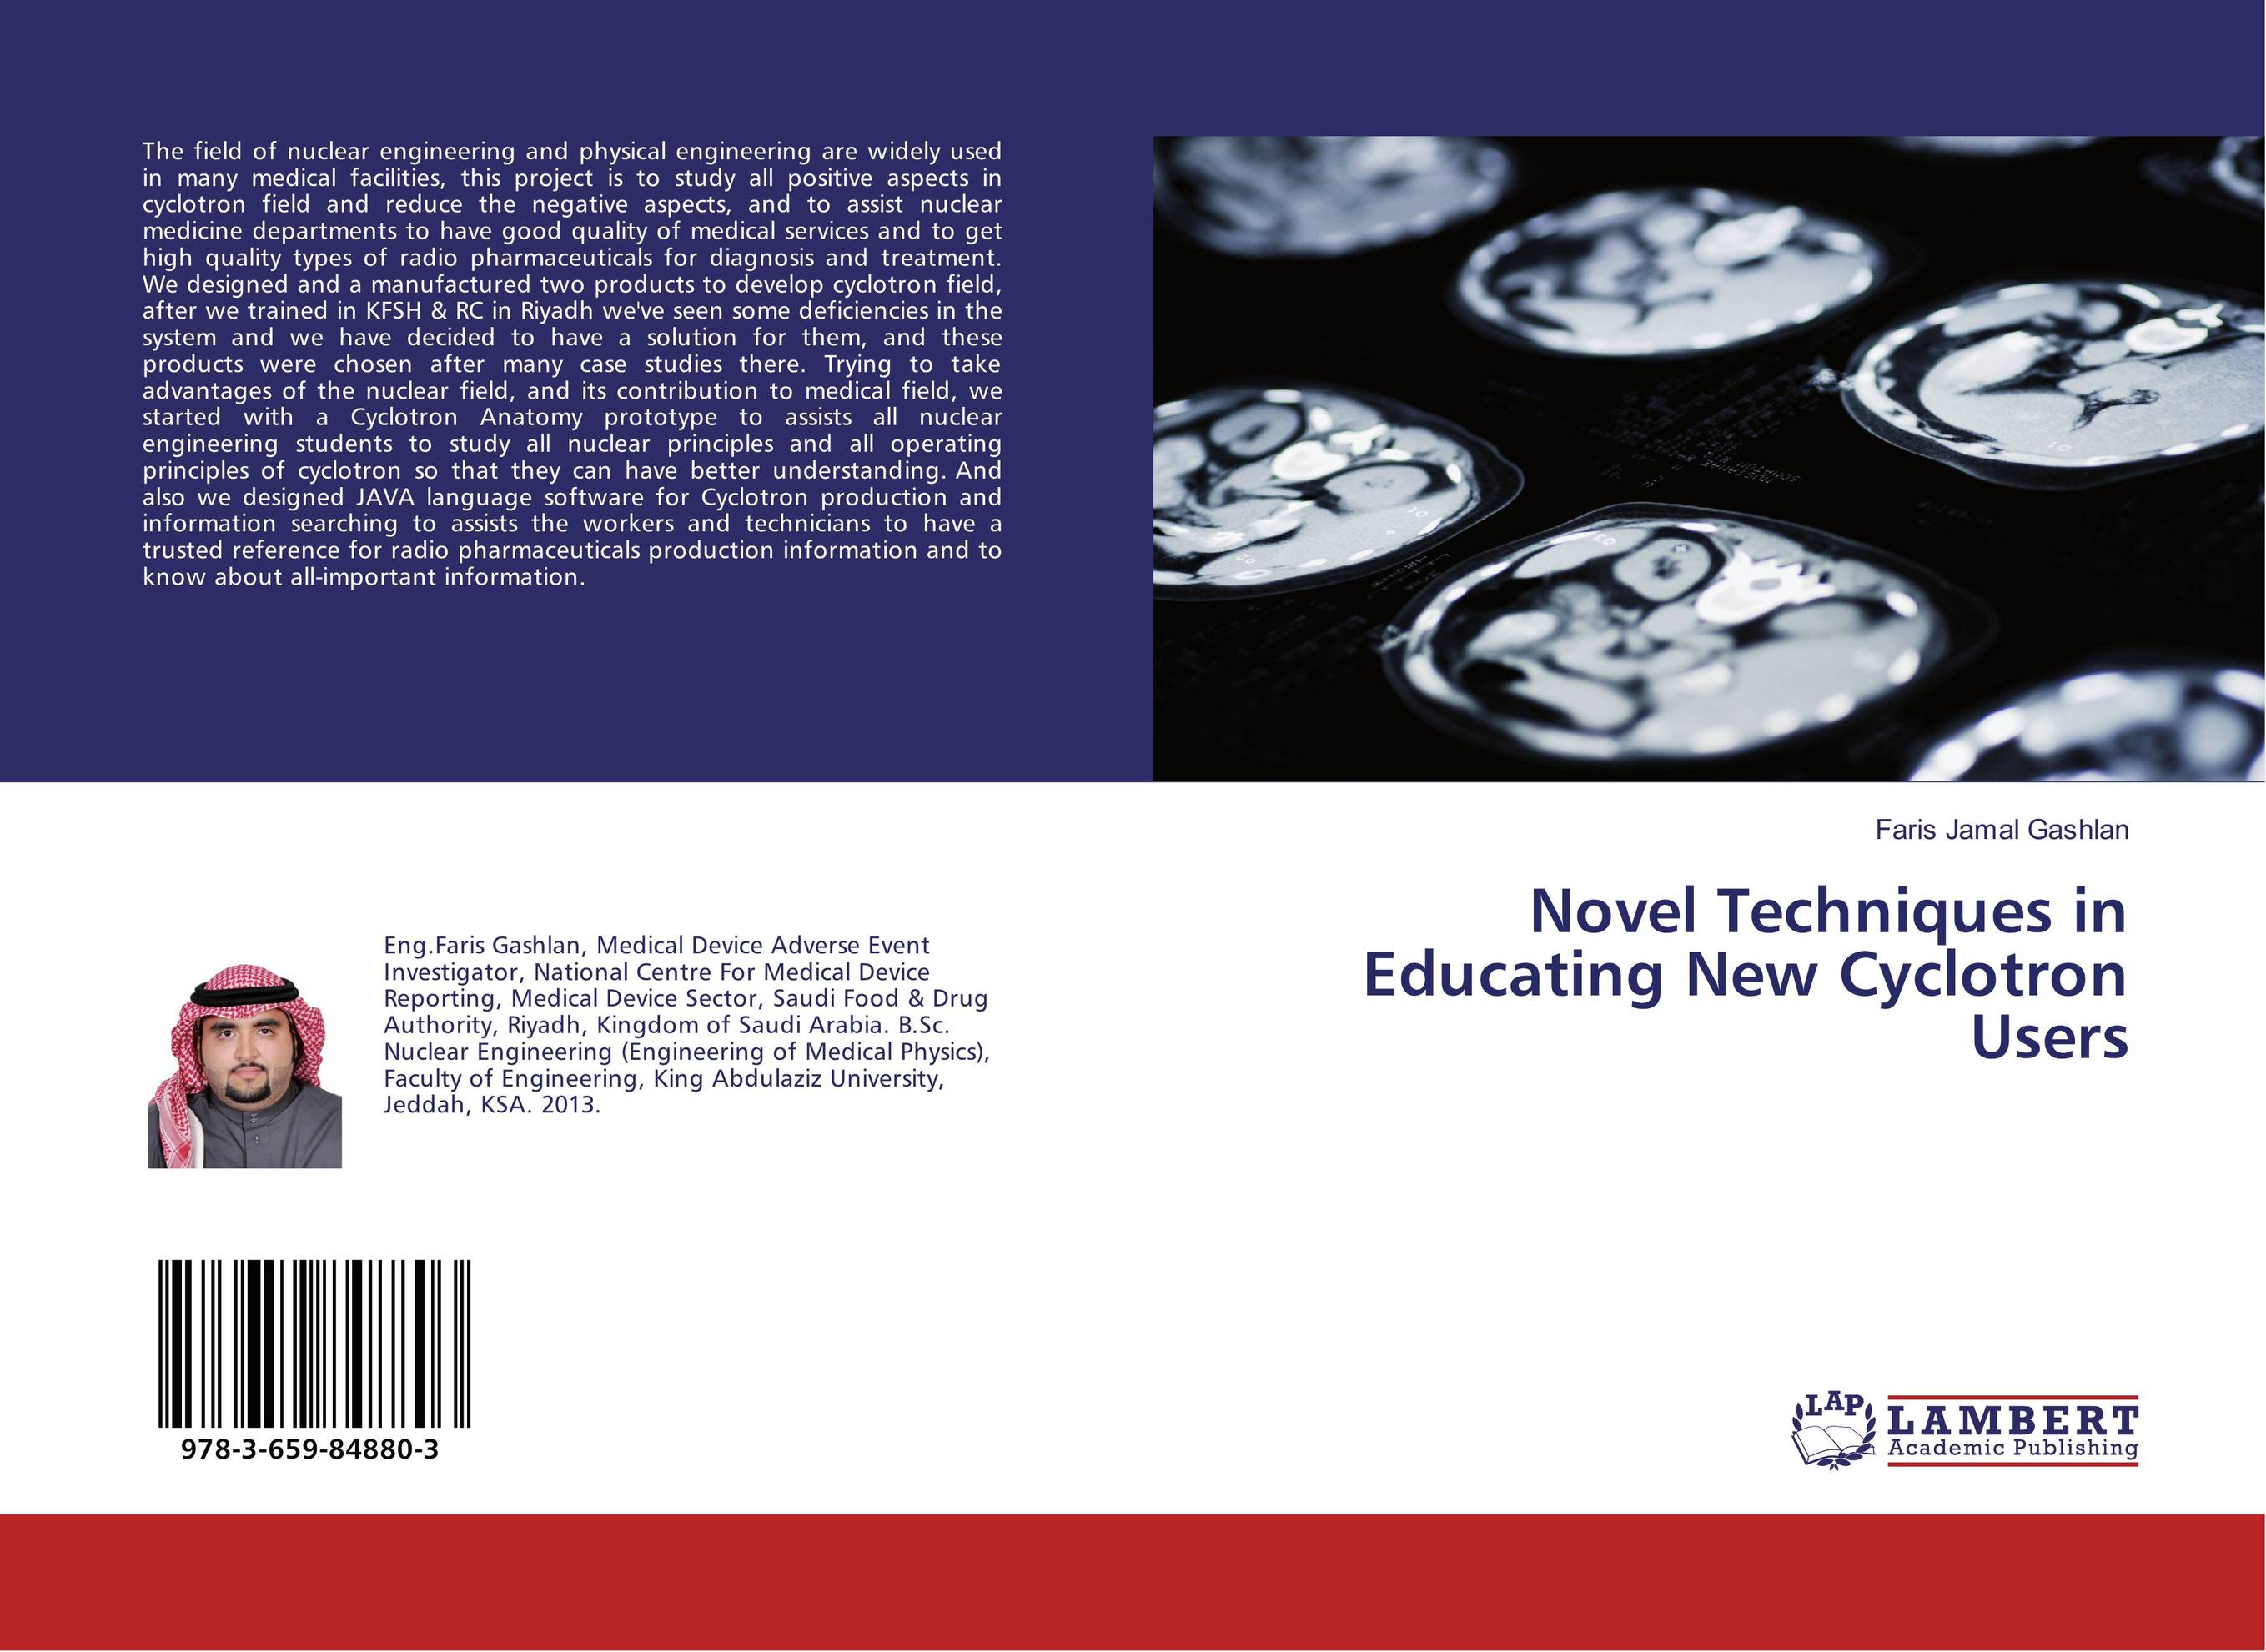 Novel Techniques in Educating New Cyclotron Users pharmaceuticals